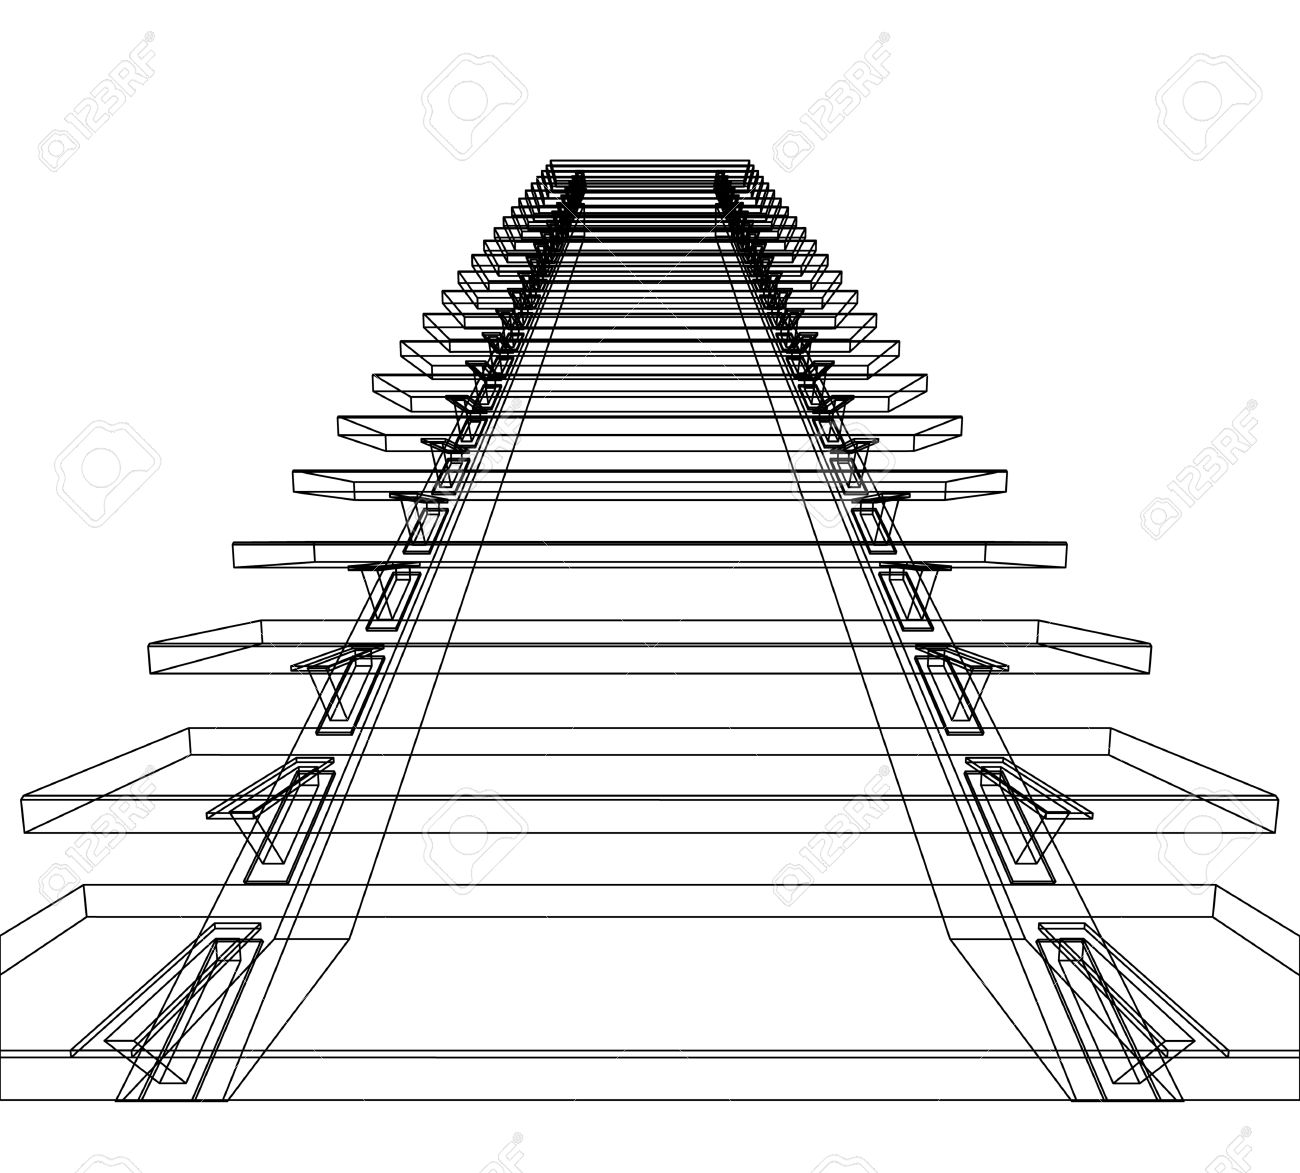 Abstract sketch of stairs. Vector illustration. Stock Illustration - 9562723